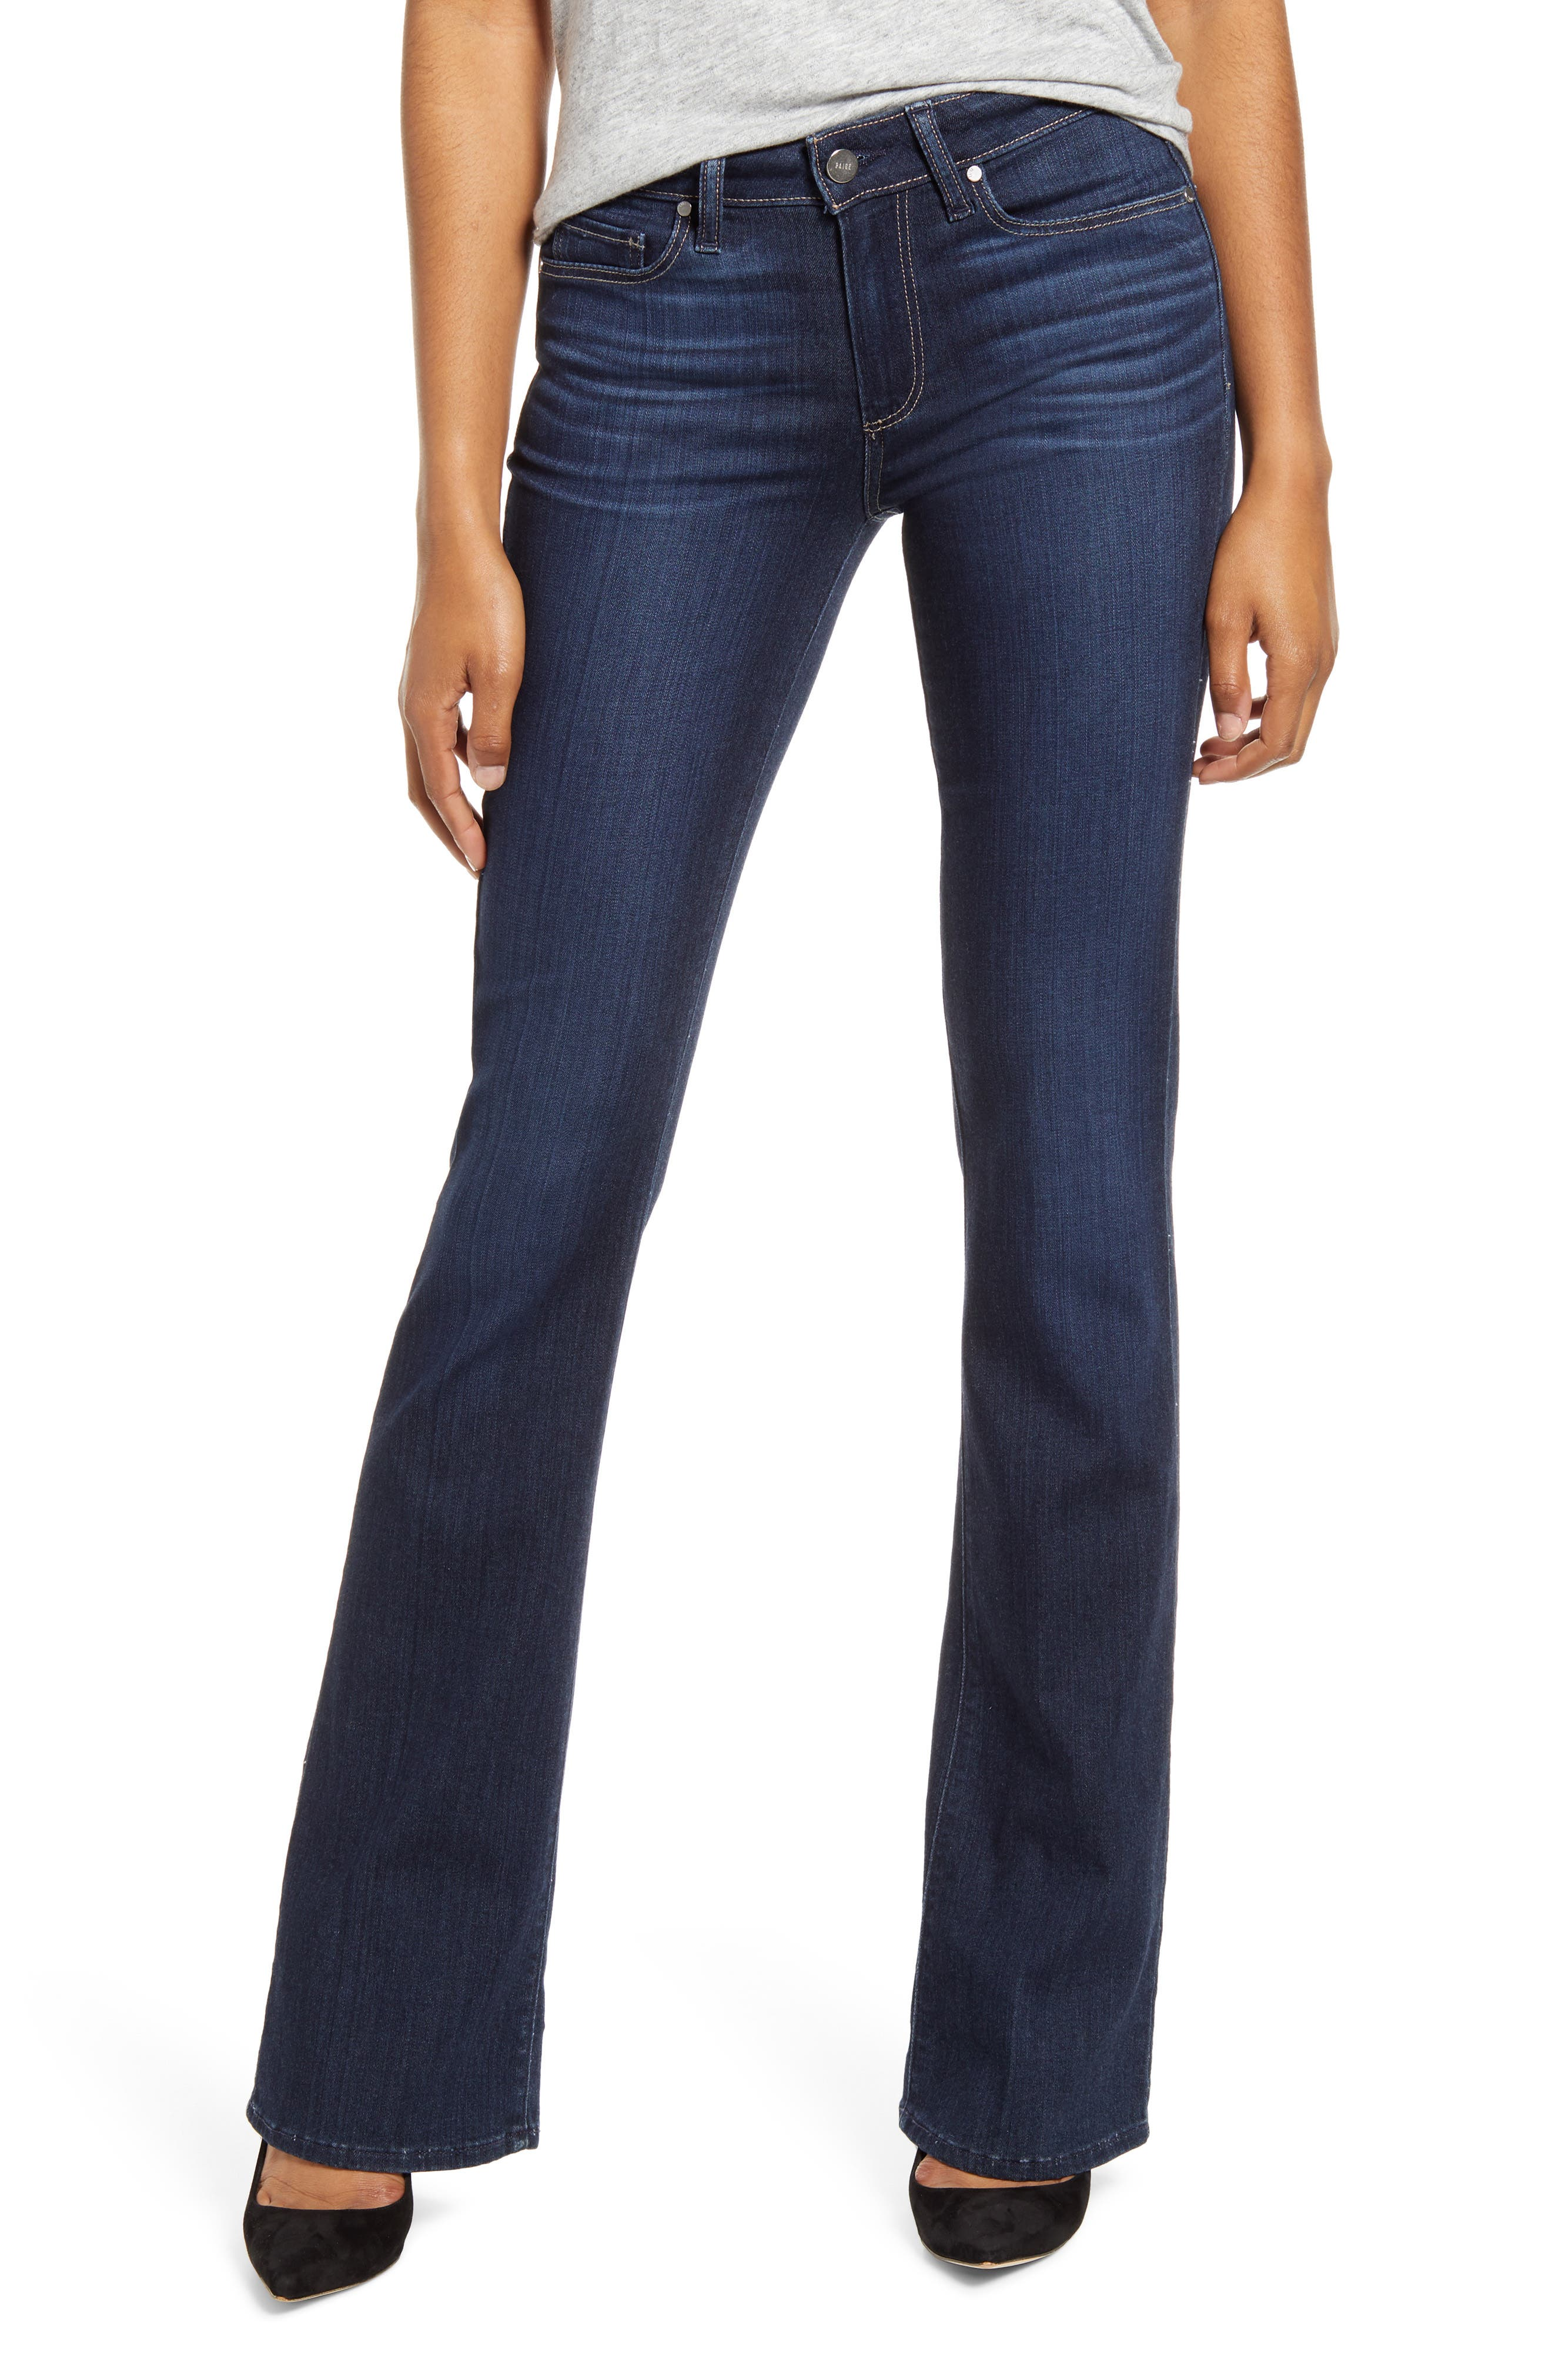 PAIGE Transcend - Manhattan Bootcut Jeans (The 101)